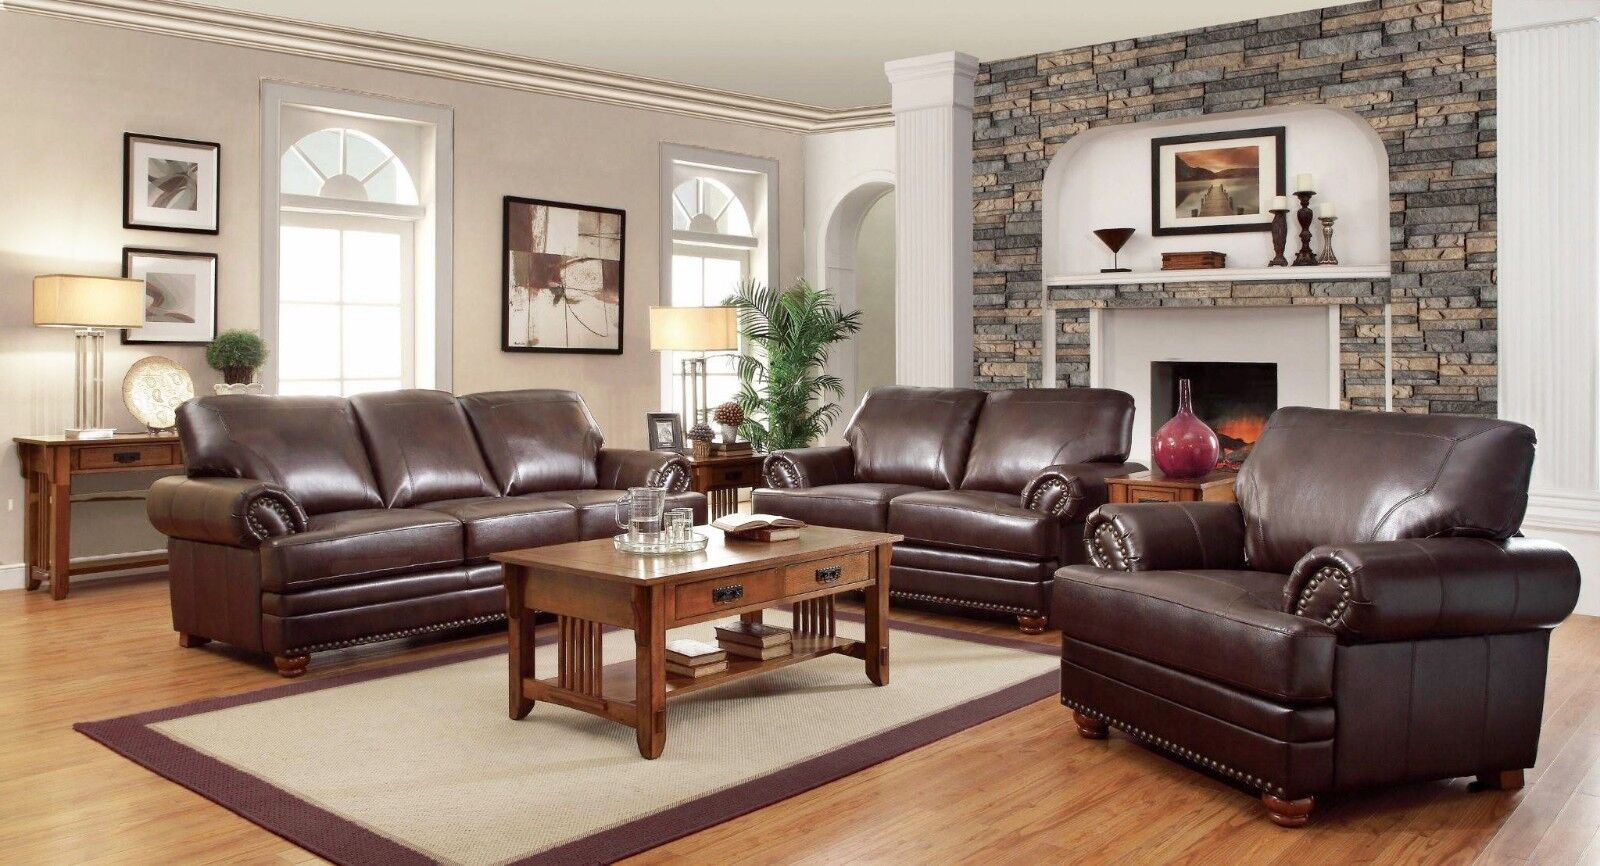 Details About Traditional Brown Bonded Leather Sofa Loveseat Chair 3 Piece Living Room Set